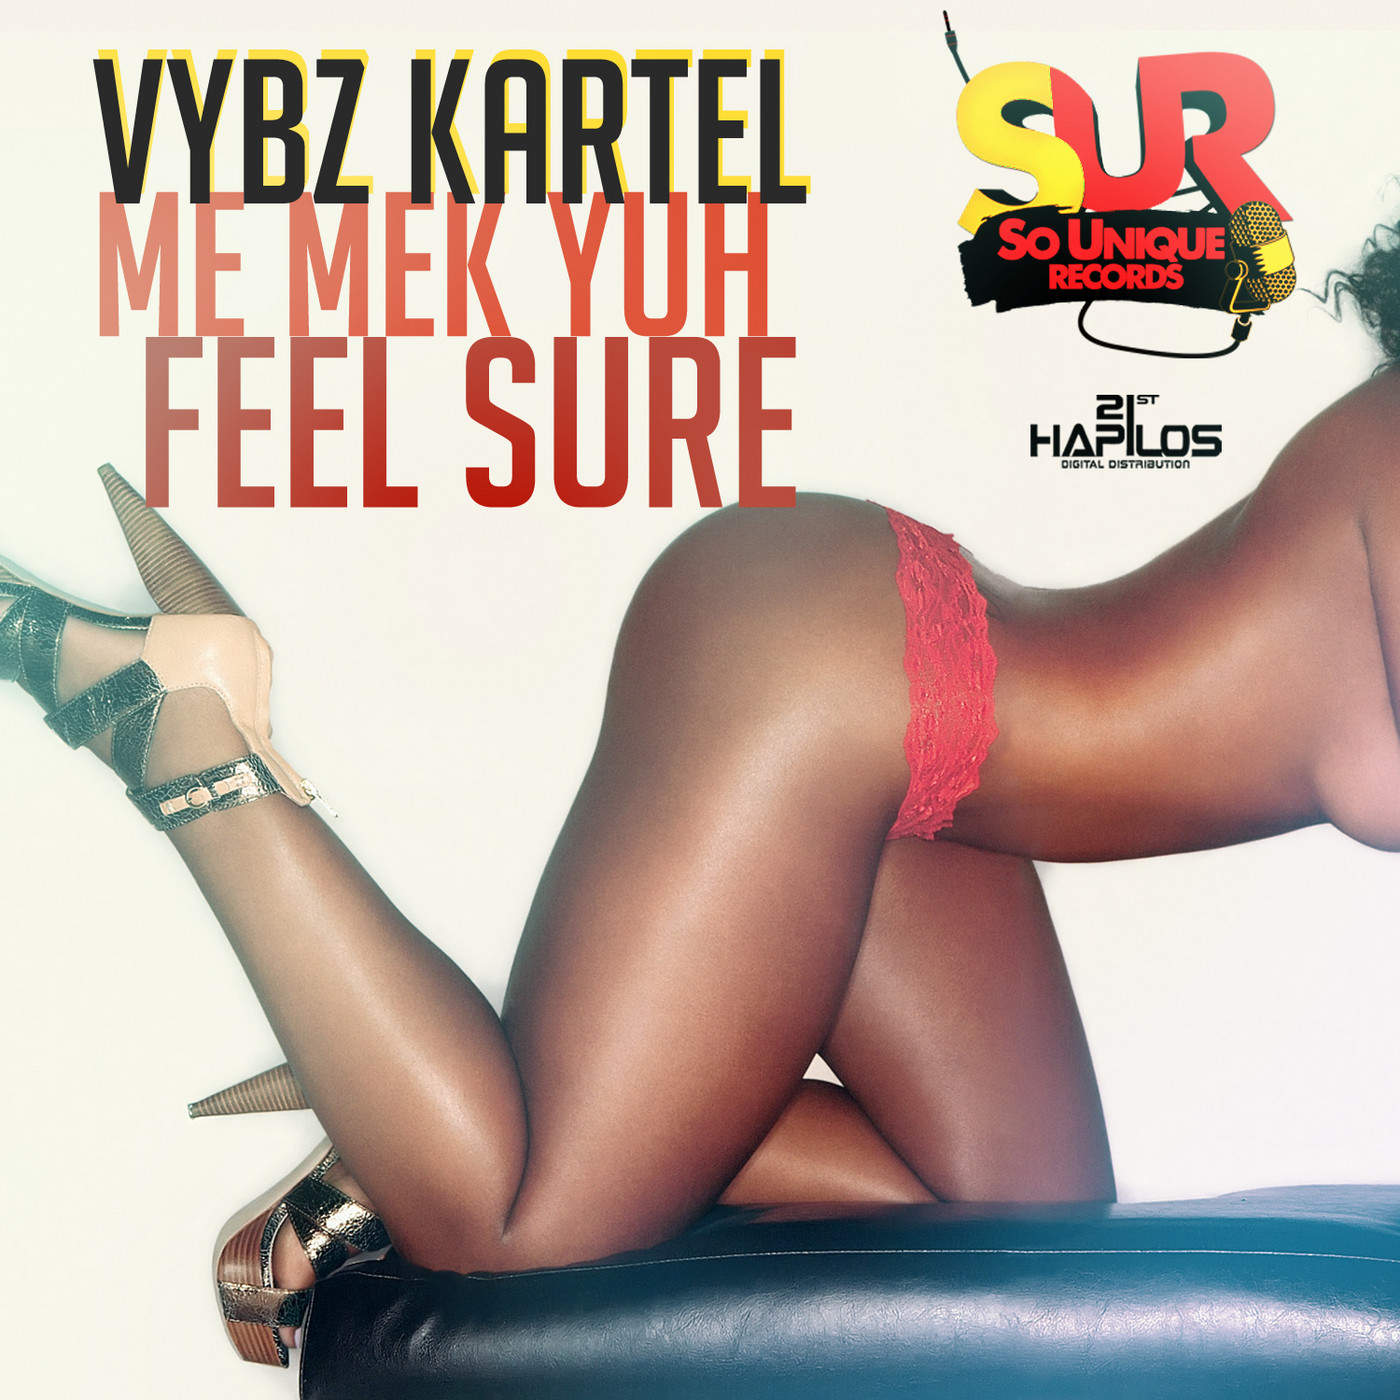 Vybz Kartel - Me Mek Yuh Feel Sure - Single Cover